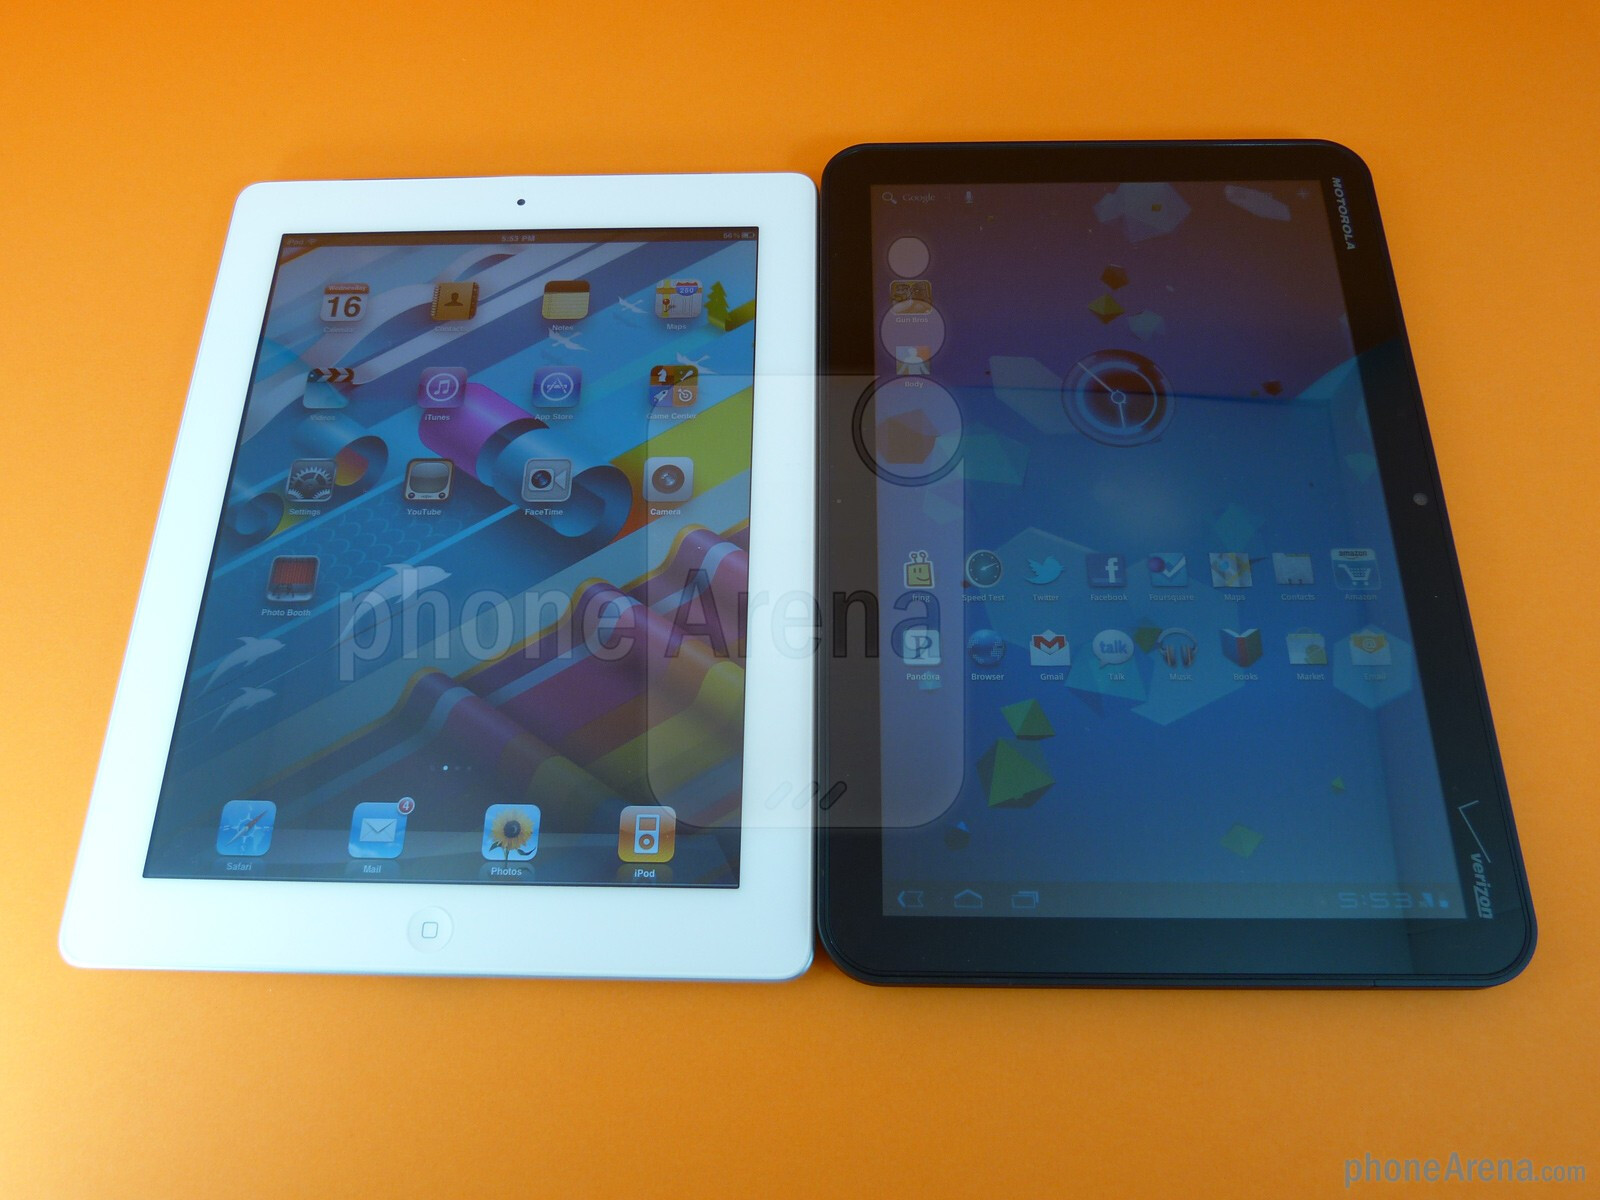 Motorola Xoom vs Ipad 2 Apple Ipad 2 vs Motorola Xoom